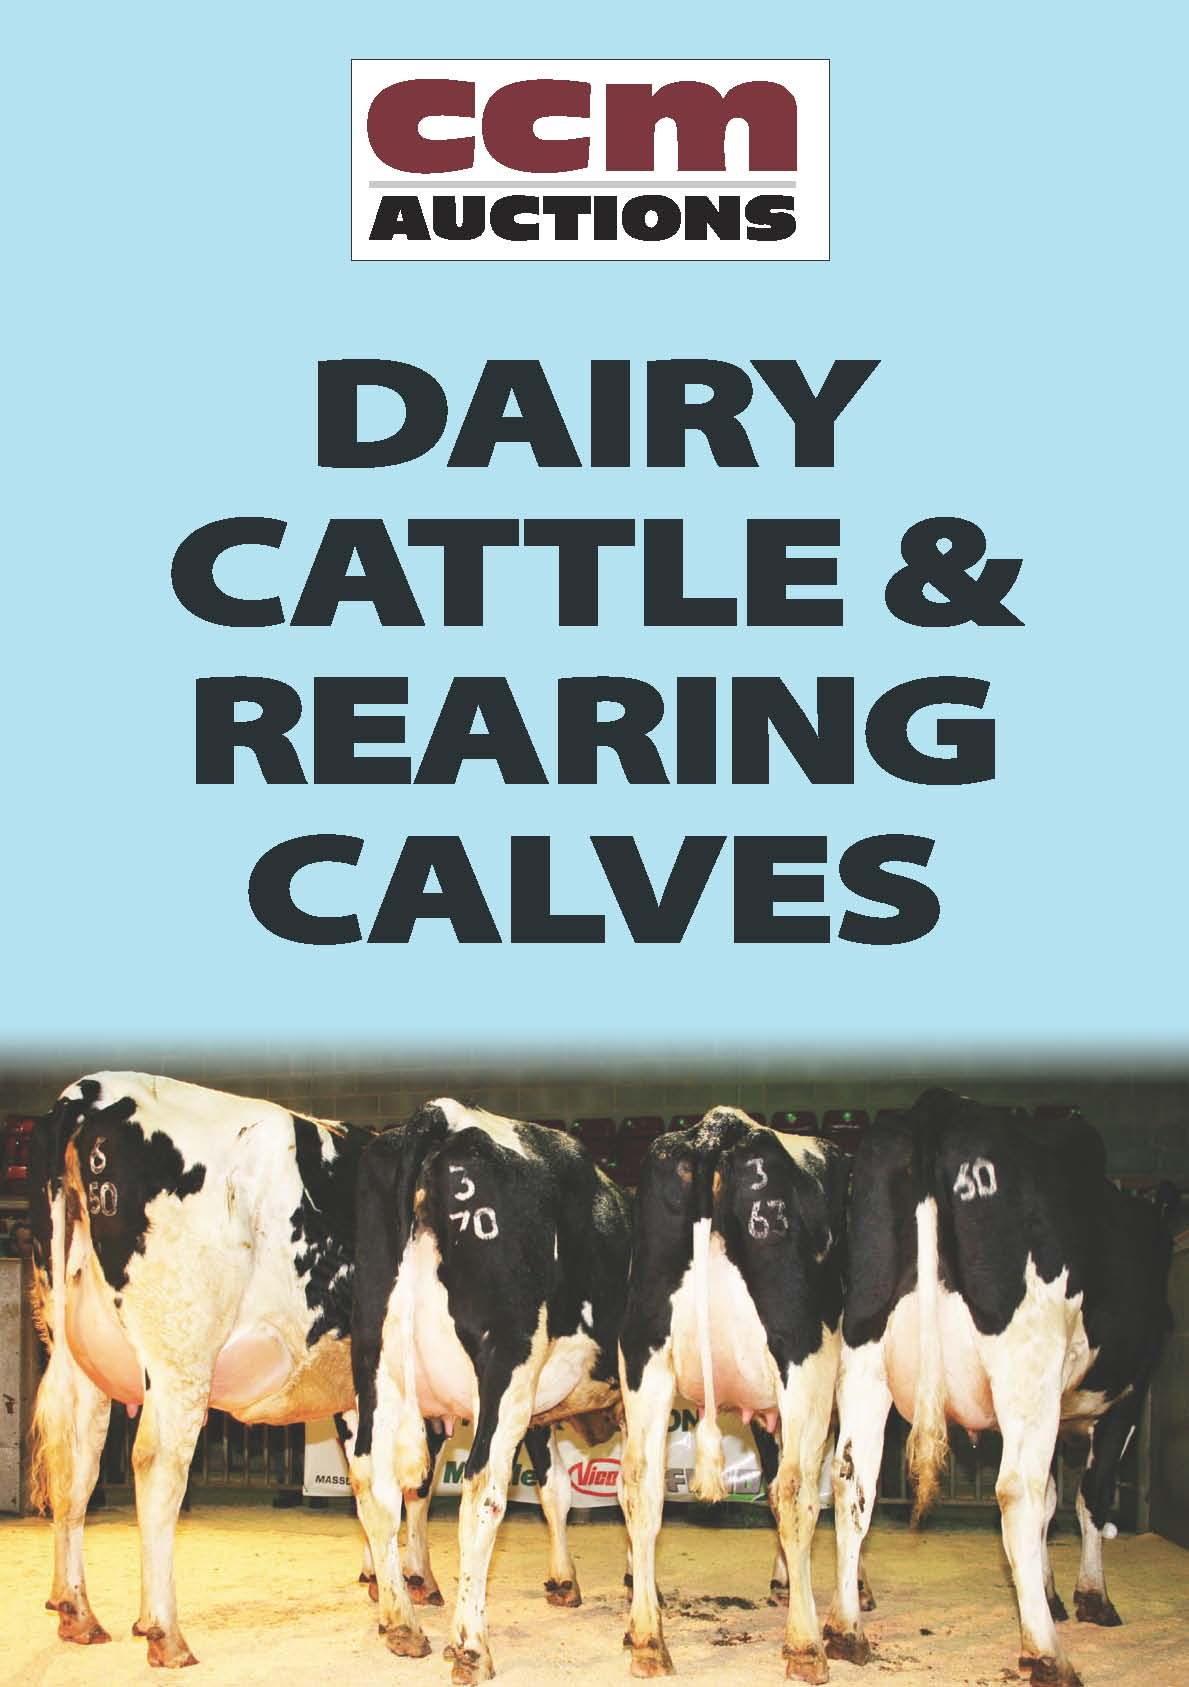 MONDAY 25TH AUGUST - DAIRY PRESS REPORT